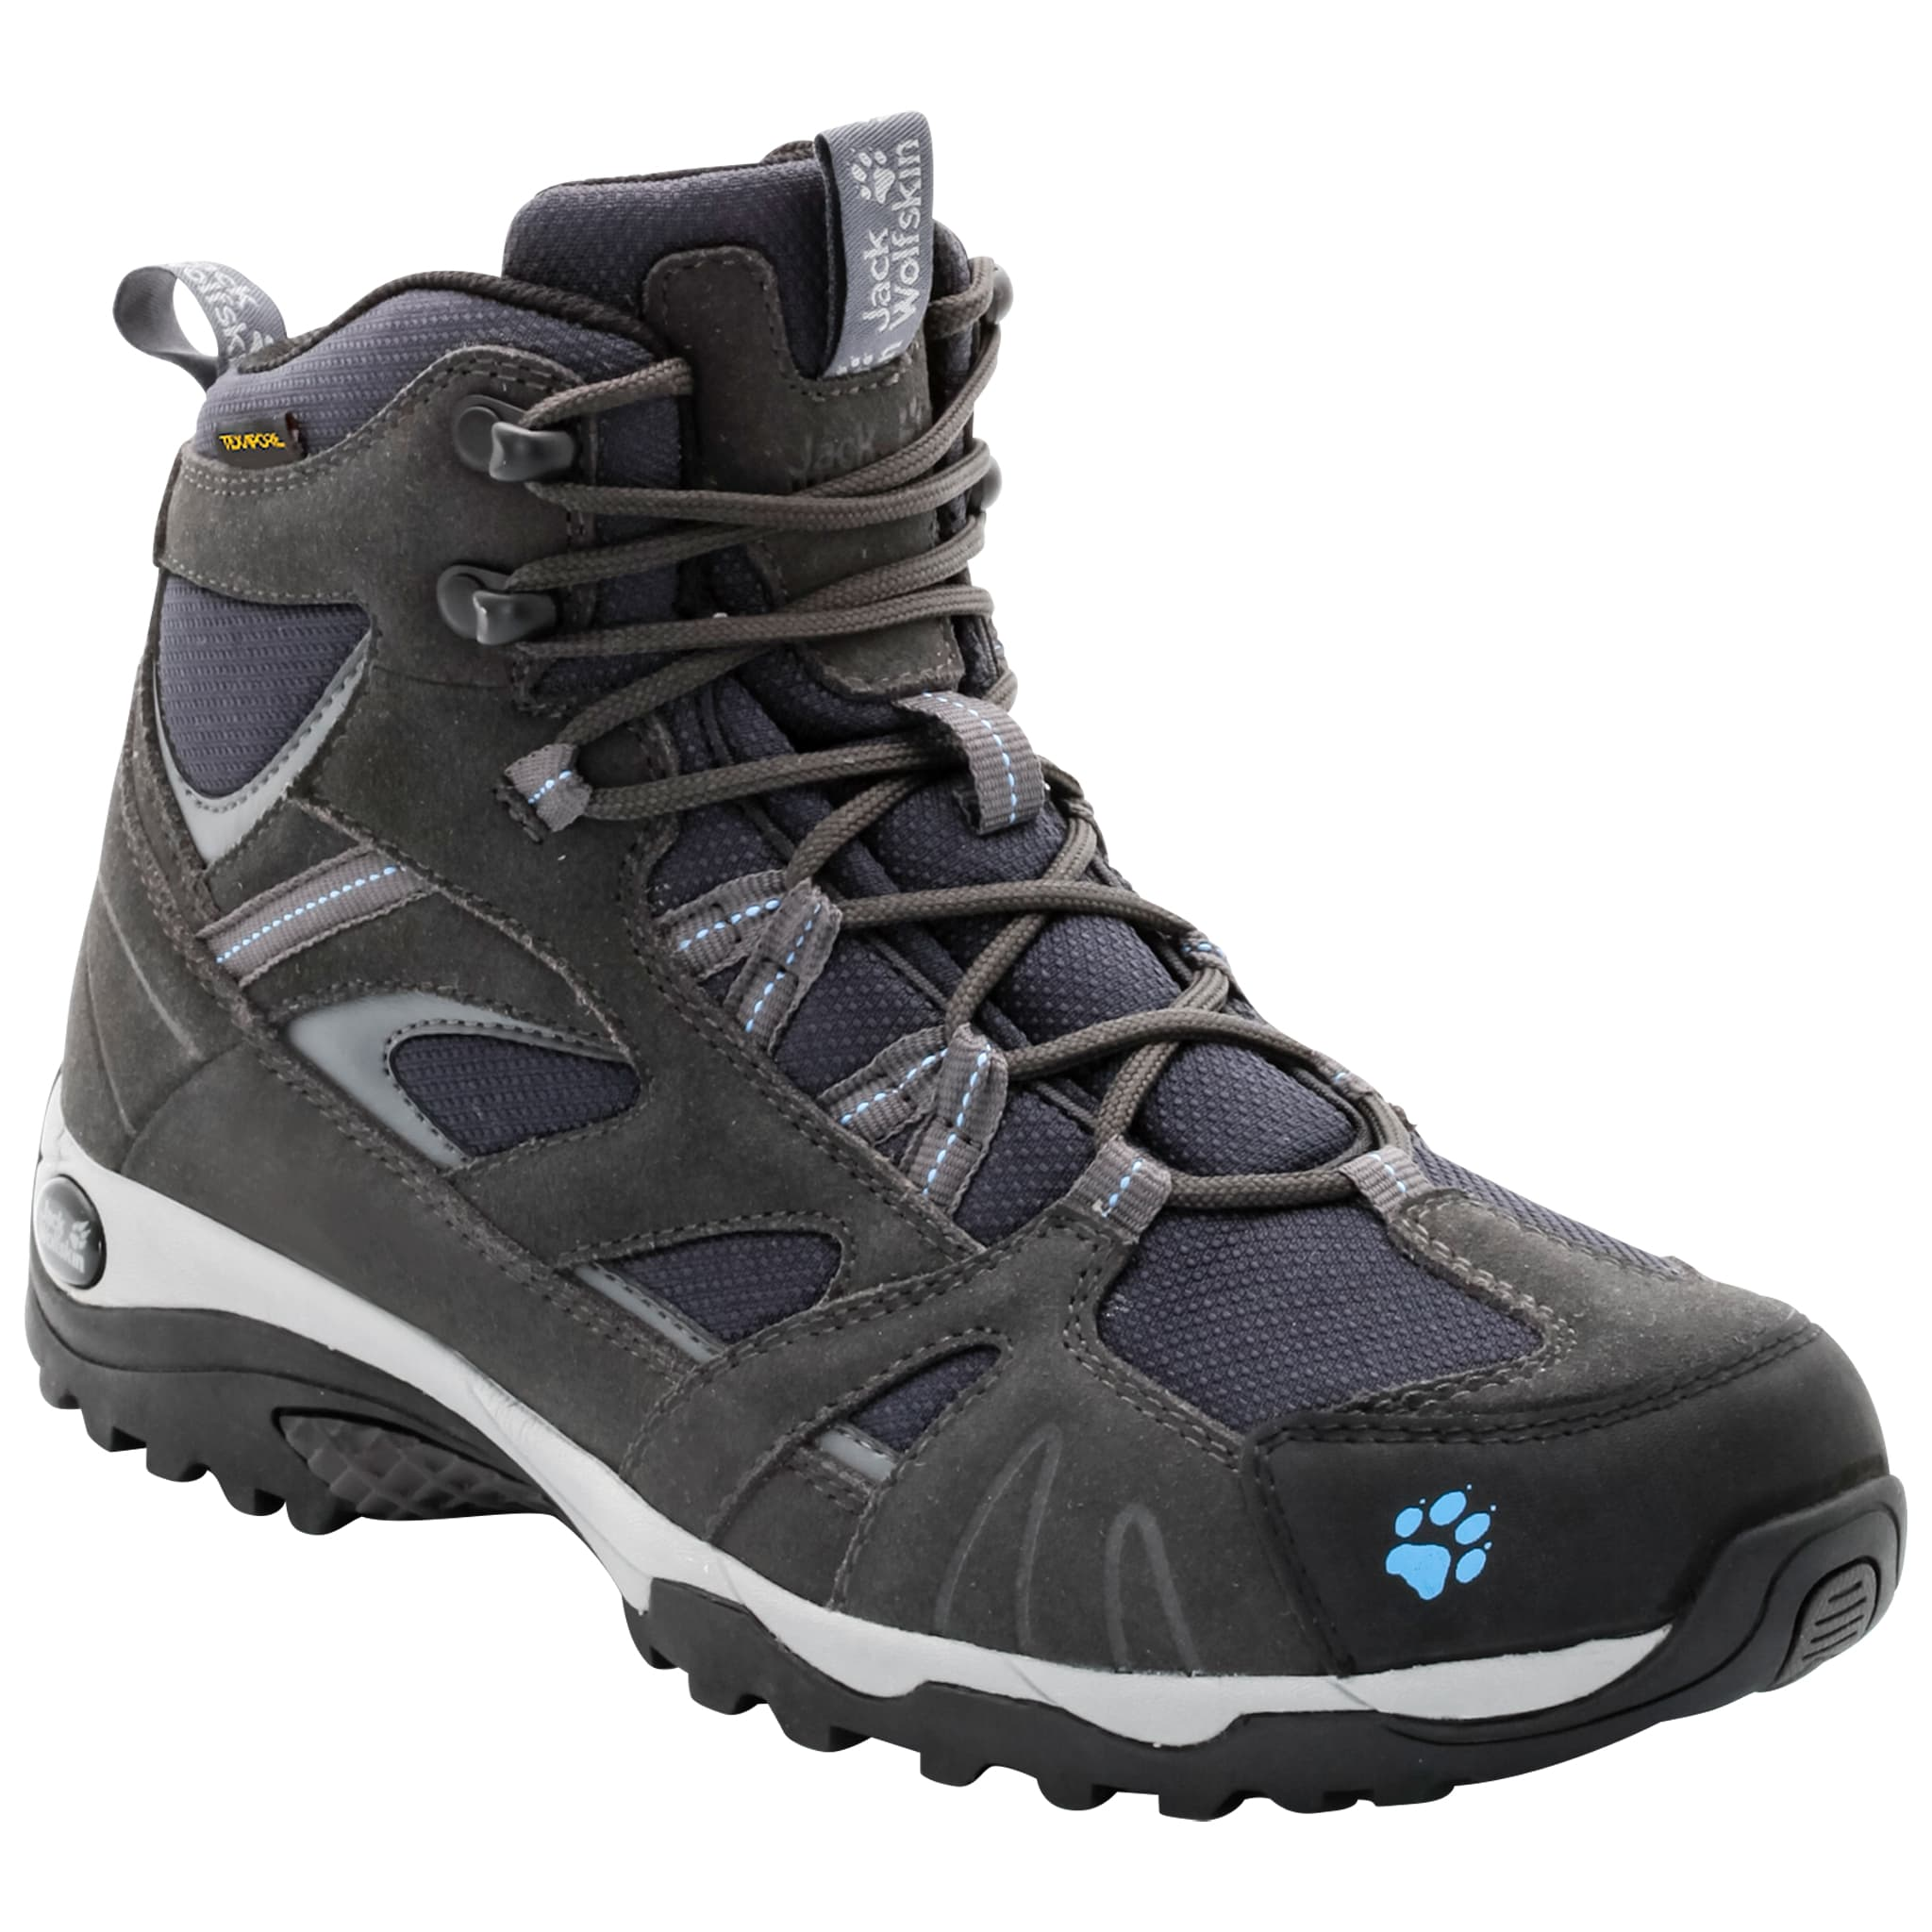 a06f4340d4 Jack Wolfskin Vojo Hike Mid Texapore Hiking Boots - Women's   Up to 41% Off  w/ Free S&H